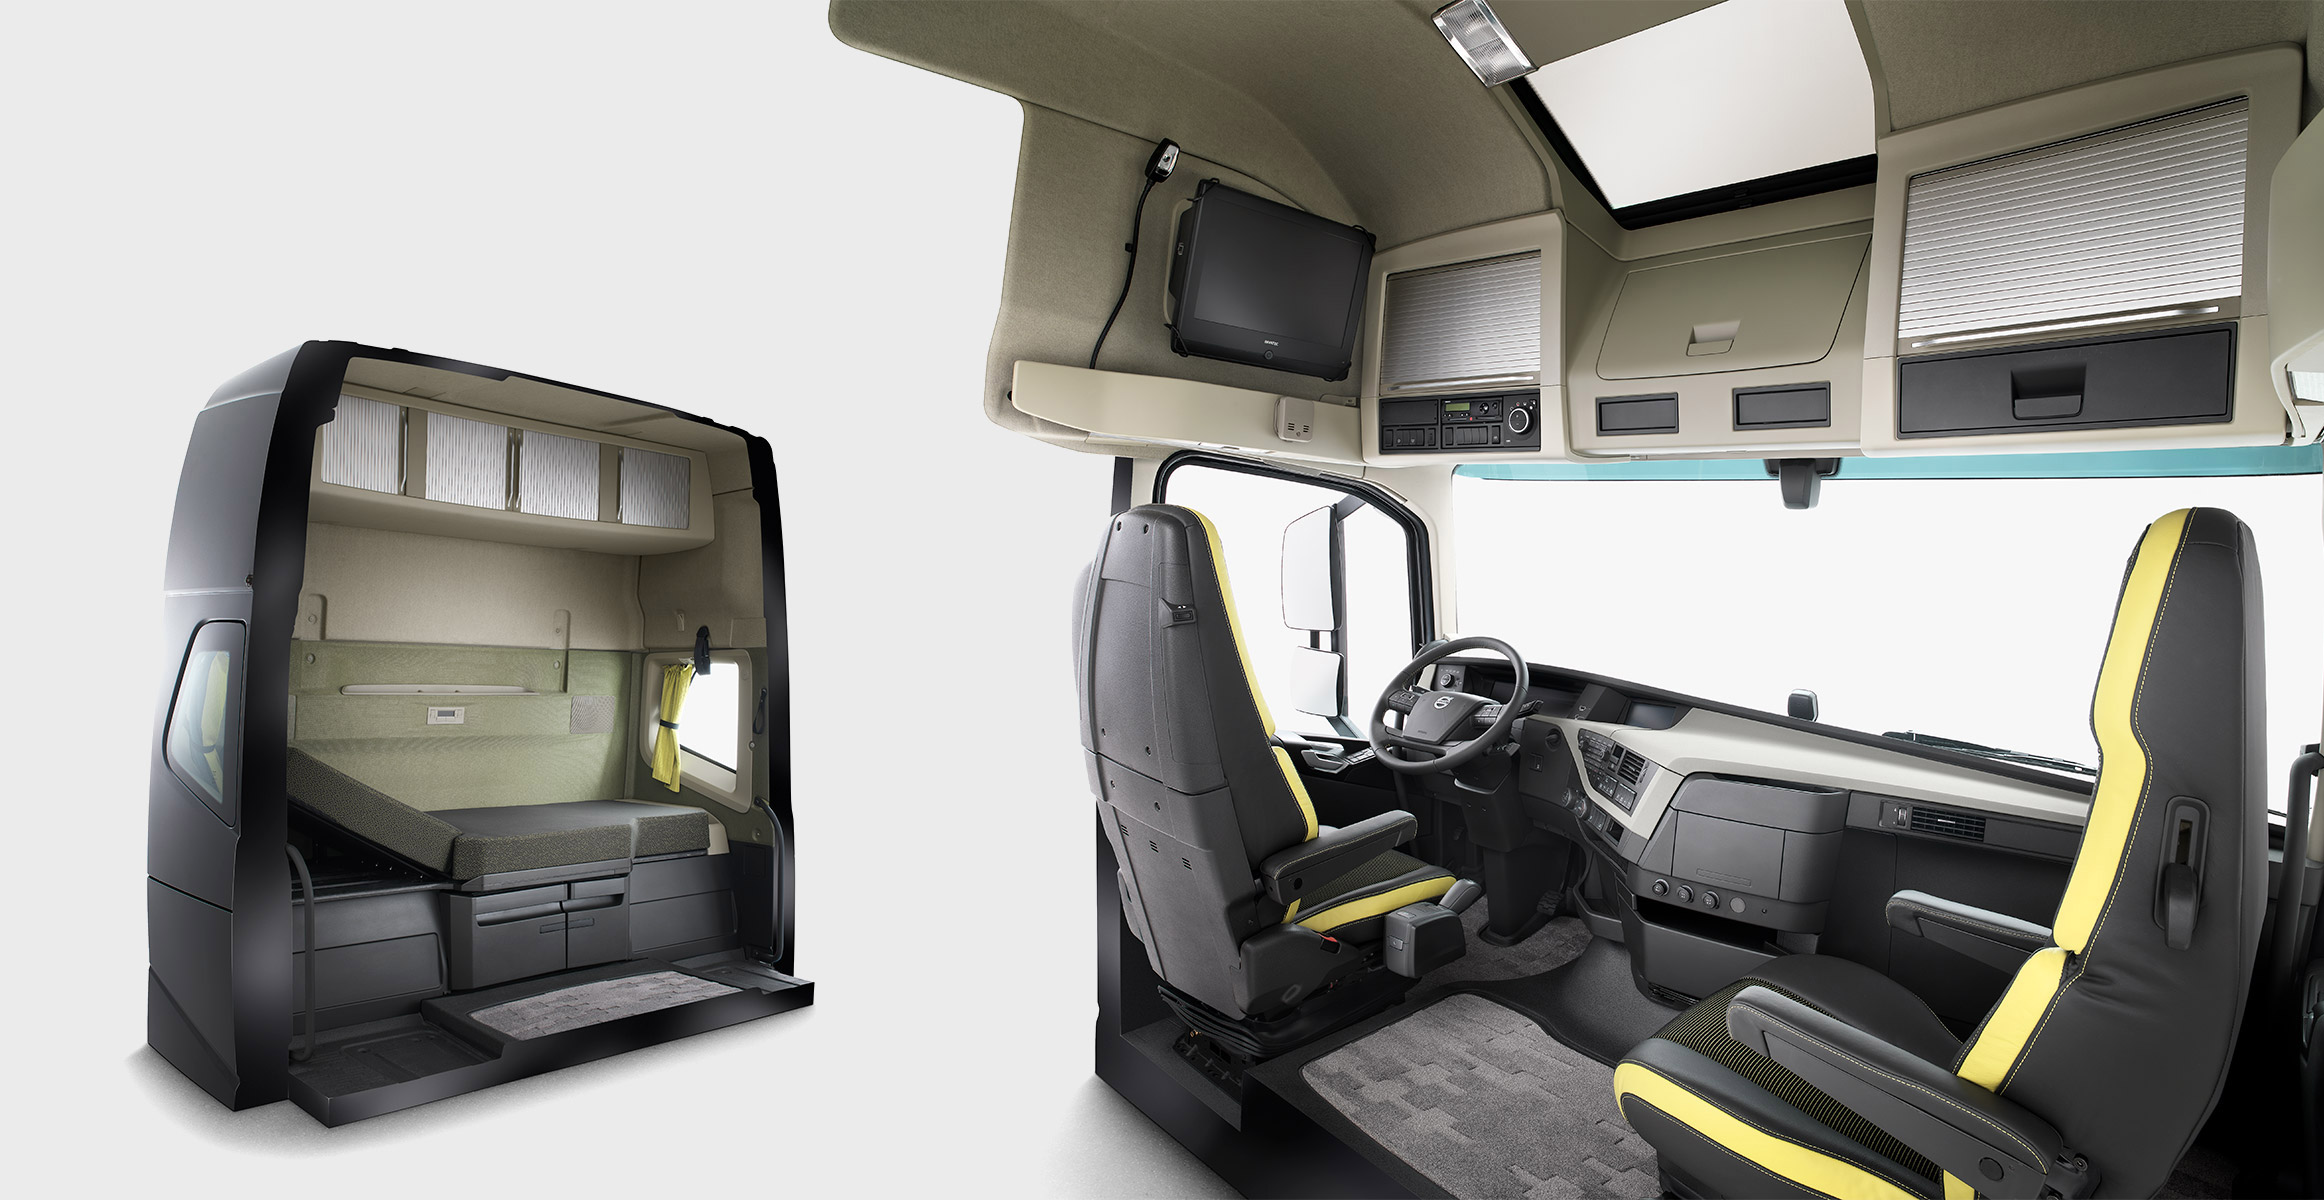 W Ultra Volvo FH16 – A cab interior with space and comfort | Volvo Trucks NI39